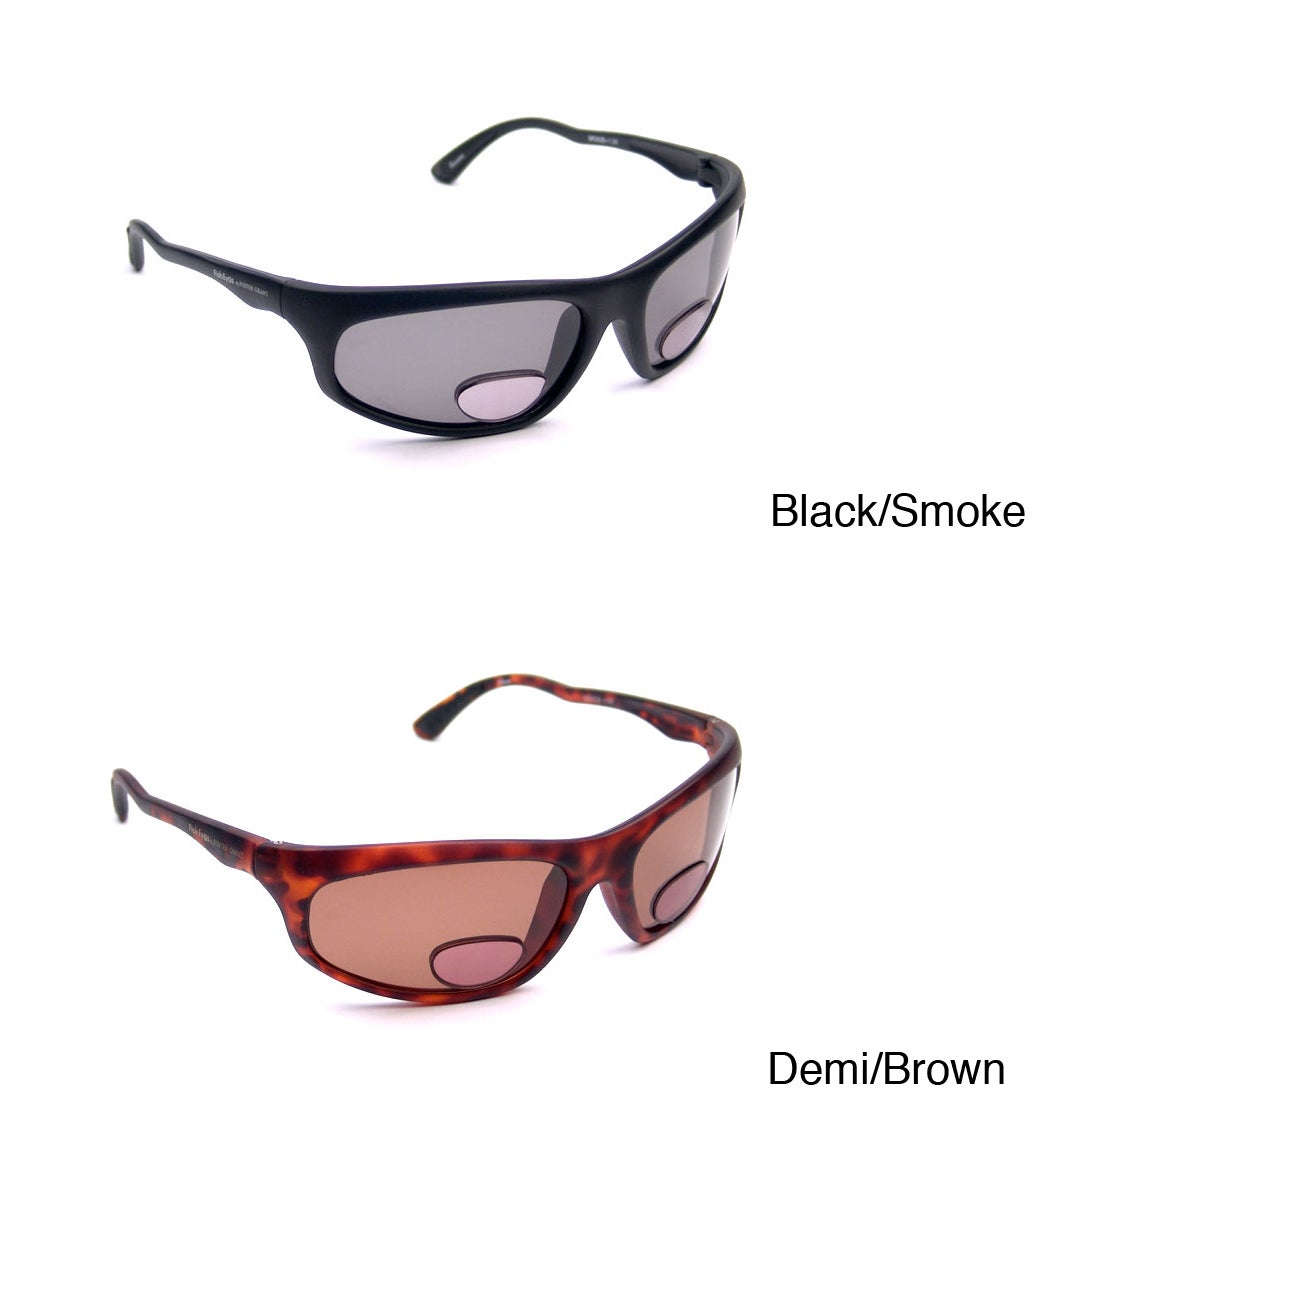 Foster Grant Sunglasses Prices  foster grant fisheyes glare reducing polarized sports sunglasses